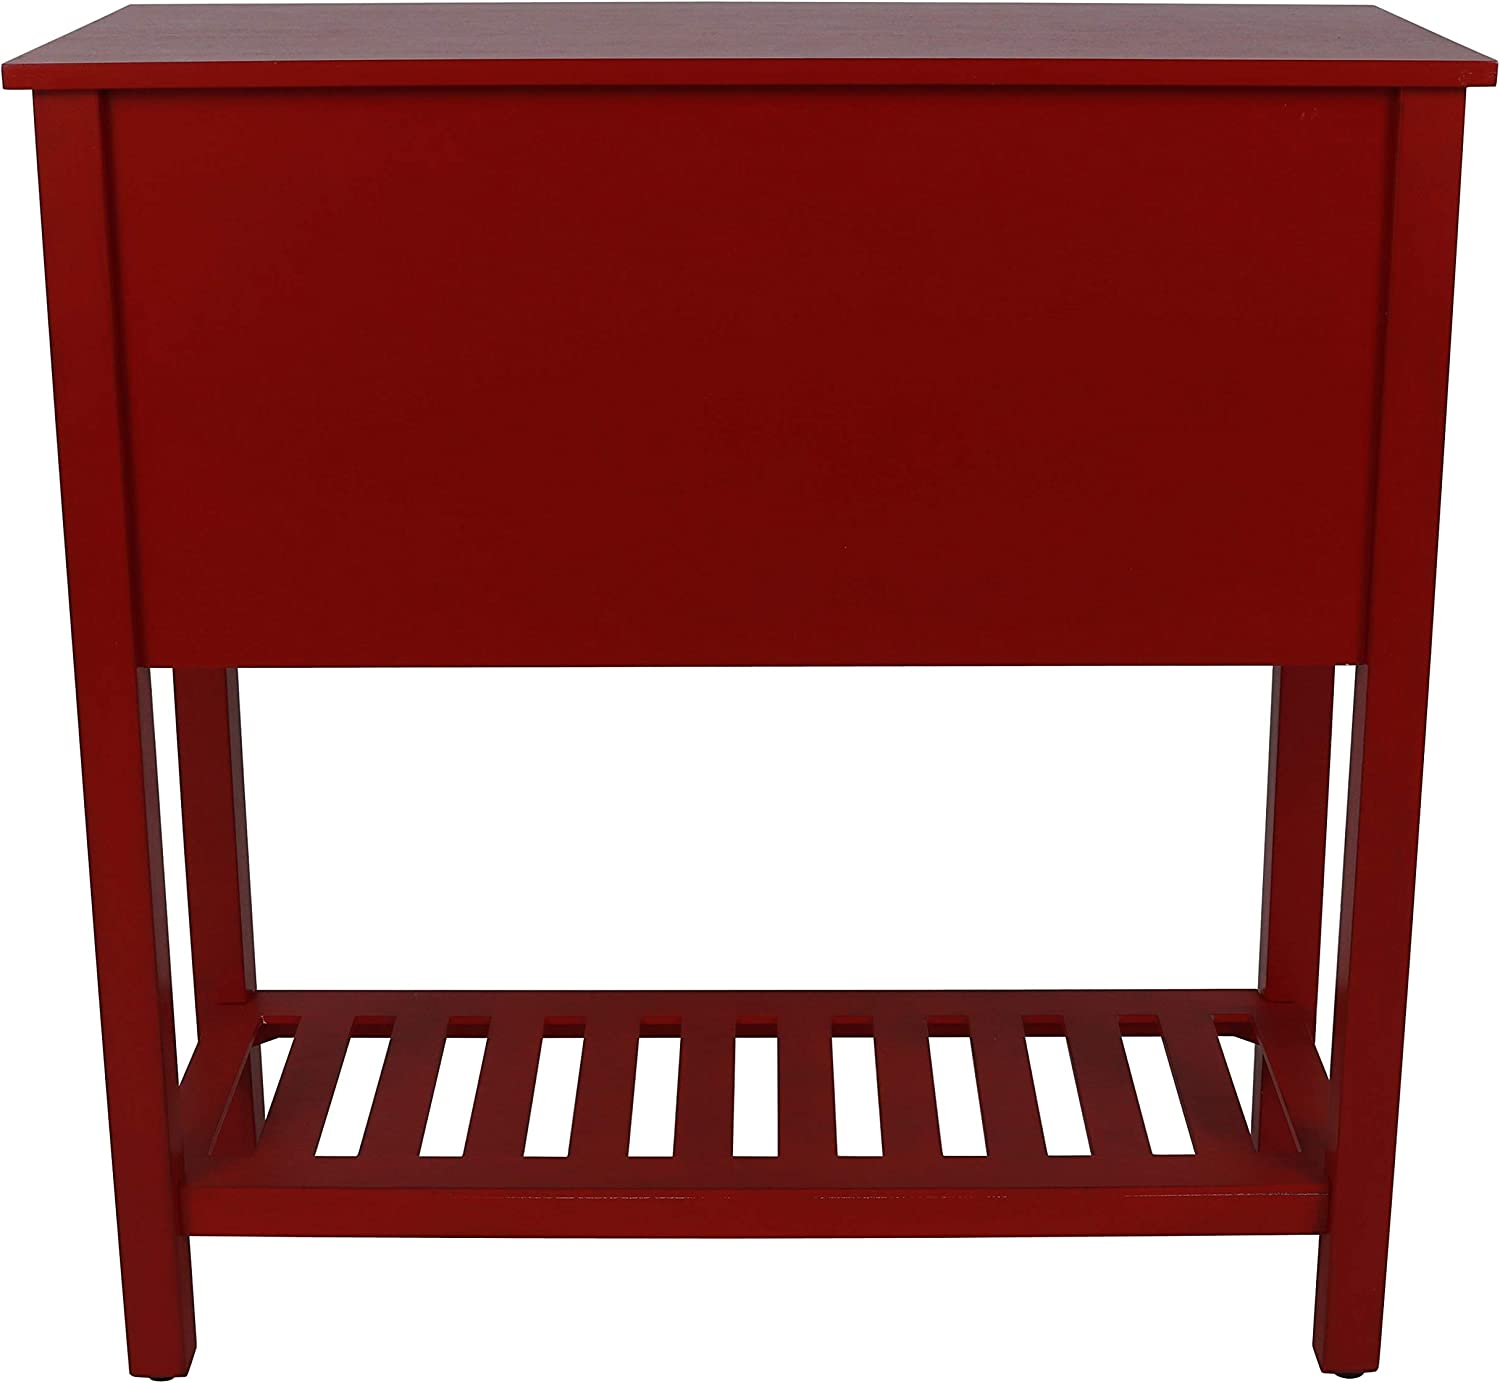 14x32x32 Antique Red Decor Therapy Bailey Bead Board 4-Drawer Console Table